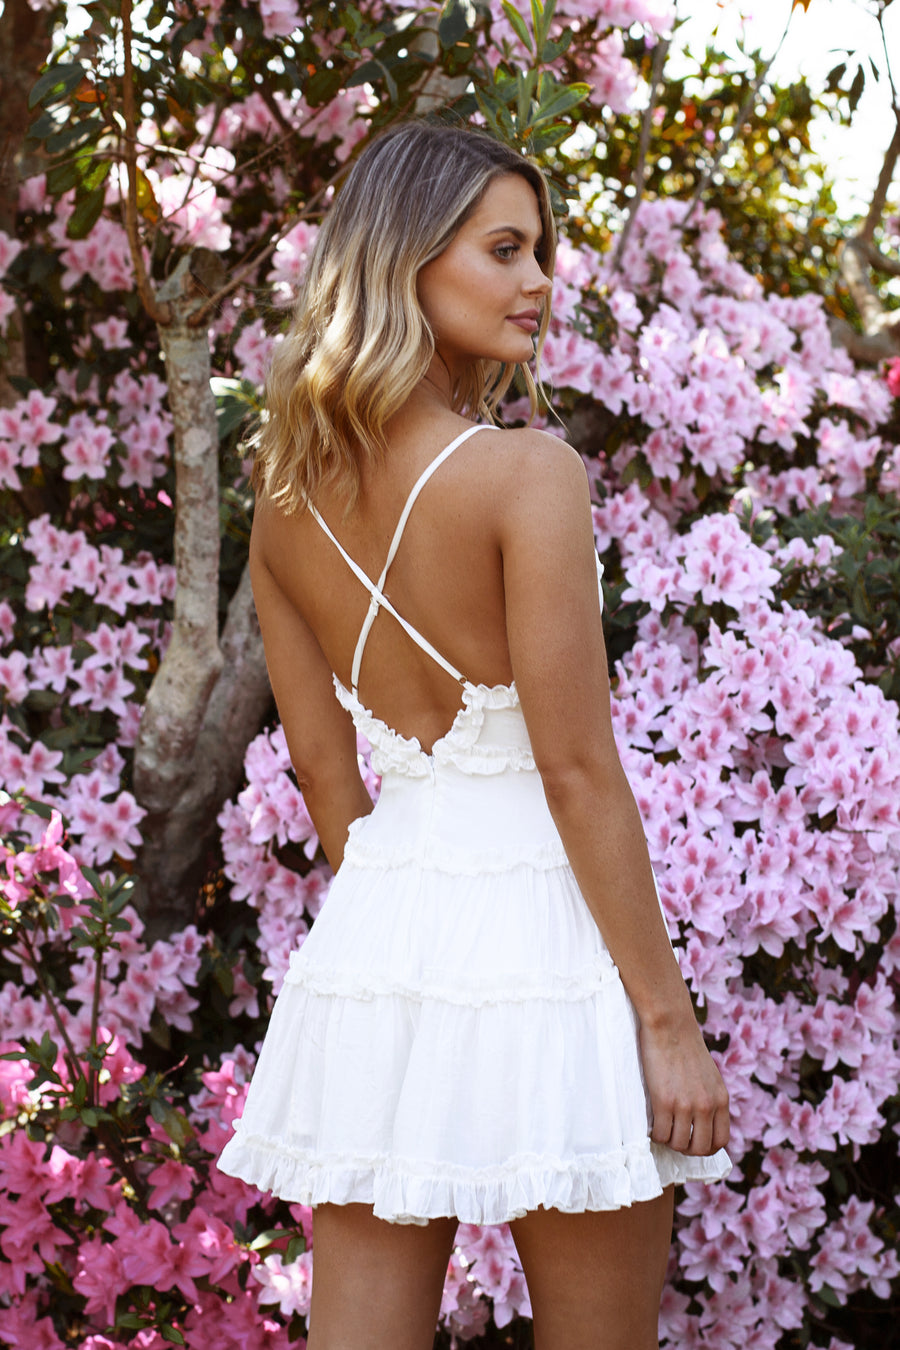 Ava Dress in White for $69.95